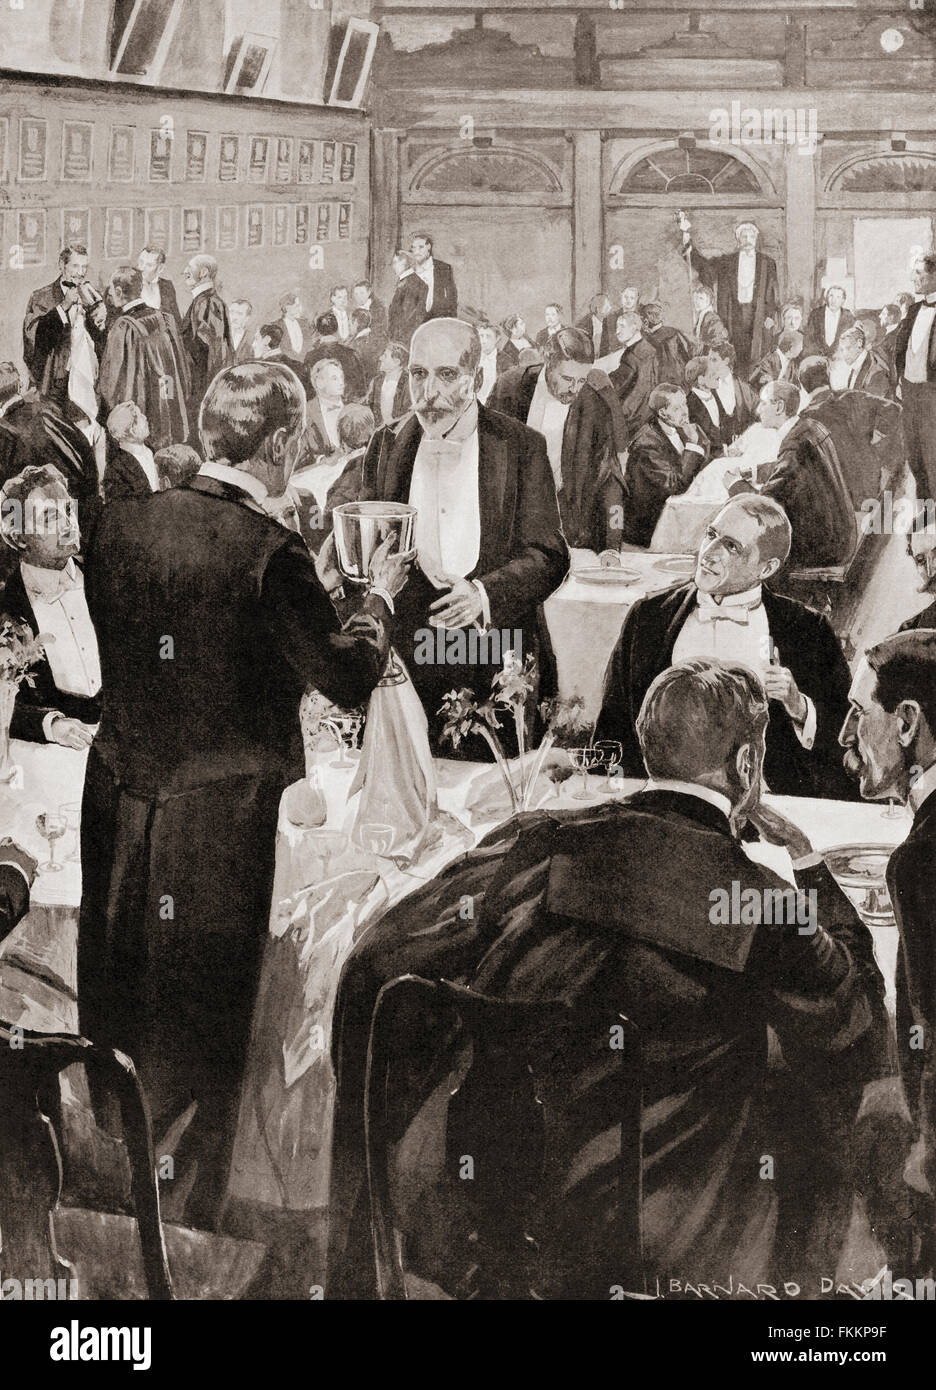 A 'Grand Night' toast at Gray's Inn, London, England.  The Benchers' table, said to have been a - Stock Image